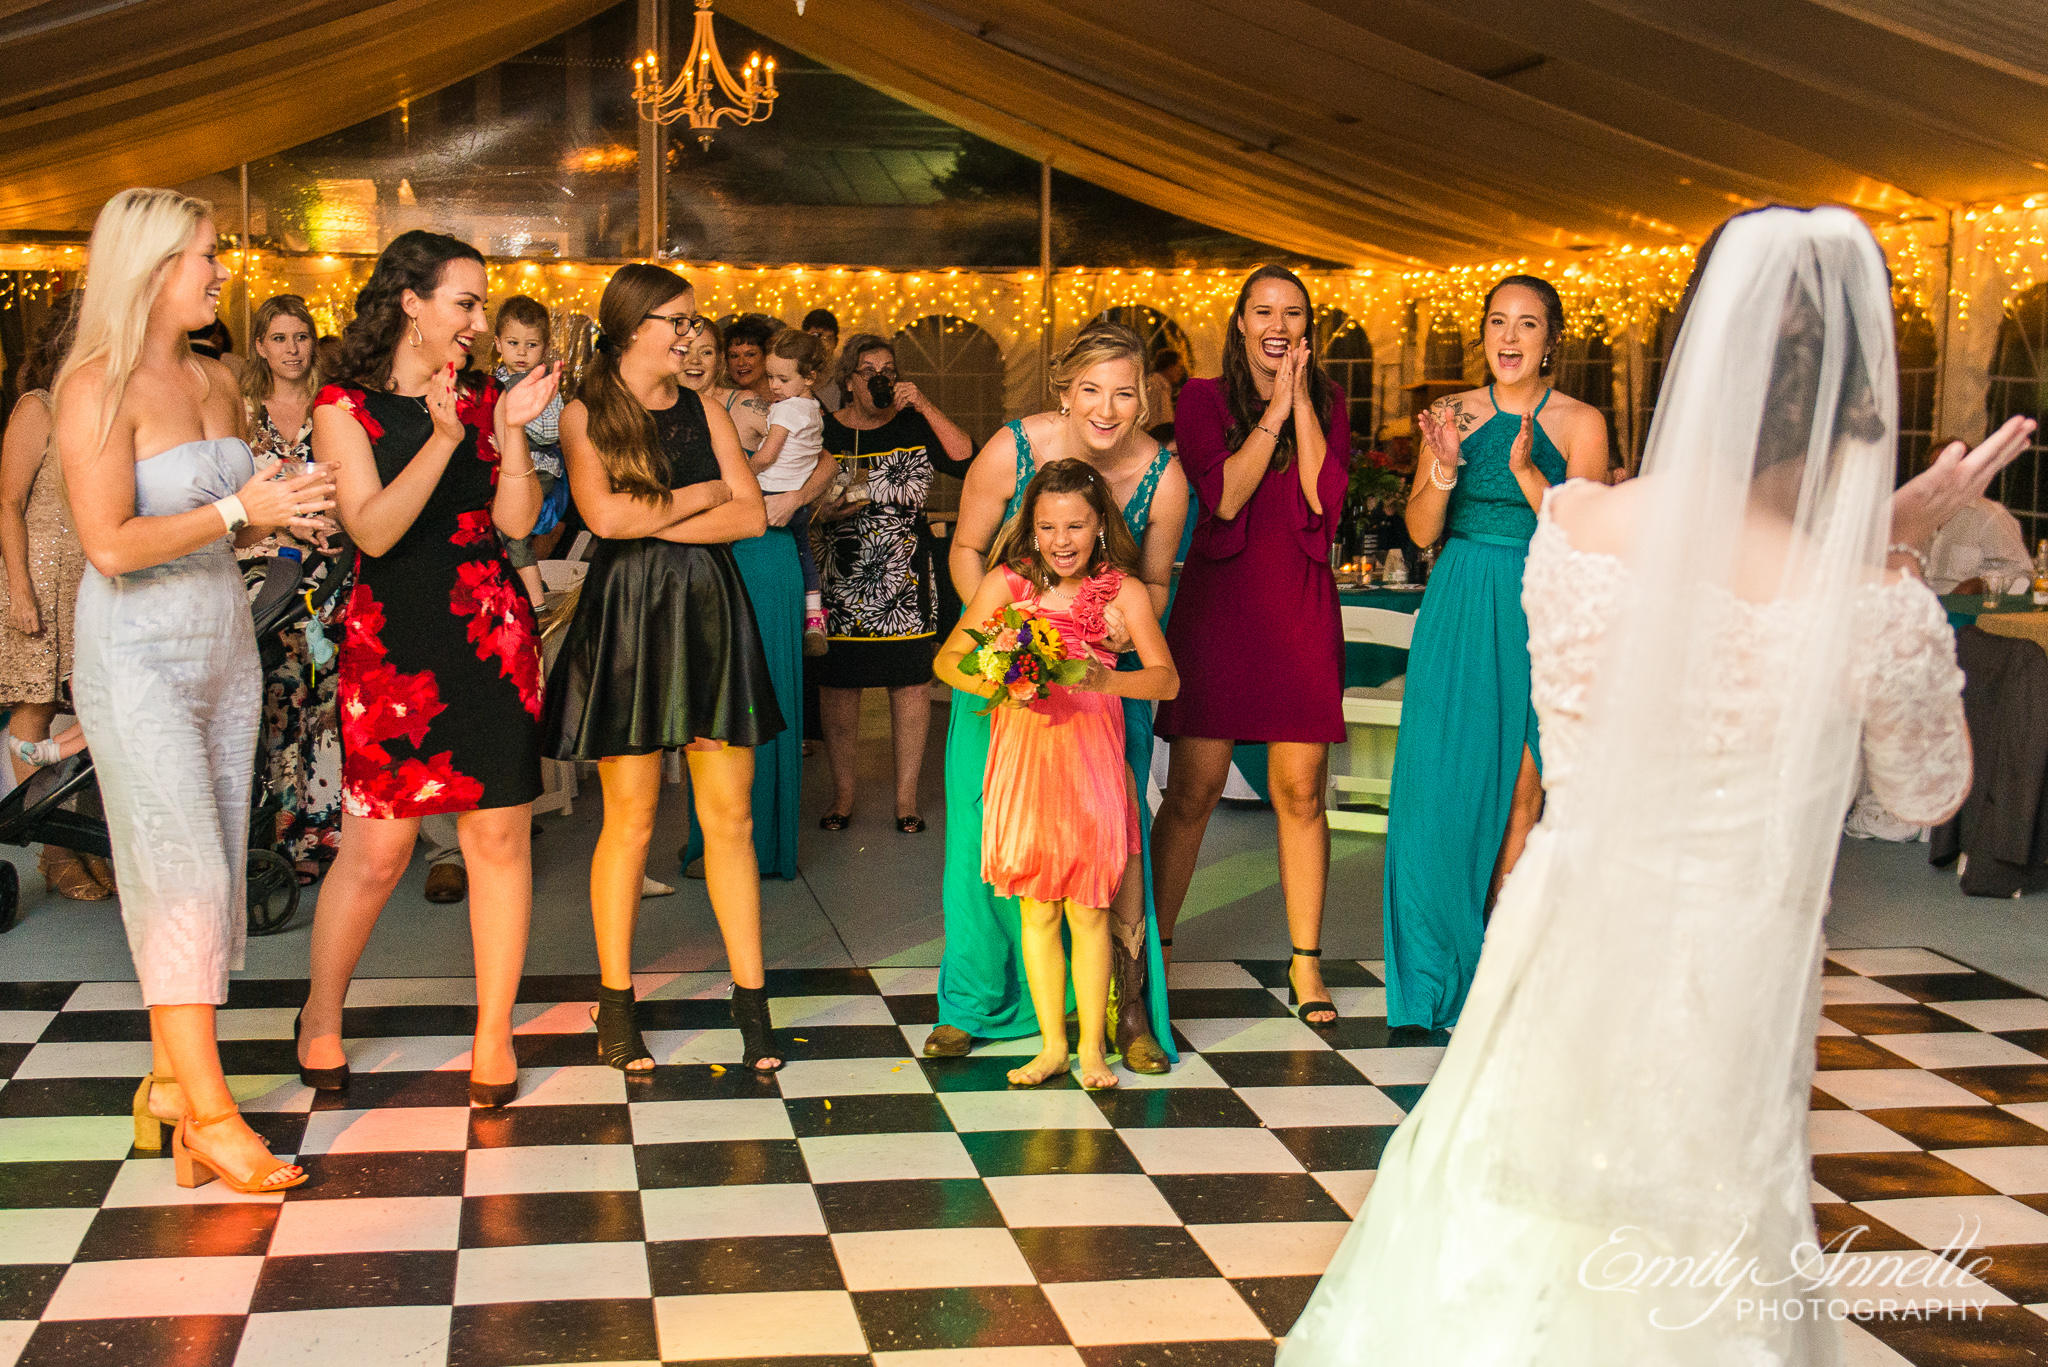 A young girl who caught the bouquet during the bouquet toss of a country wedding reception at Amber Grove near Richmond, Virginia